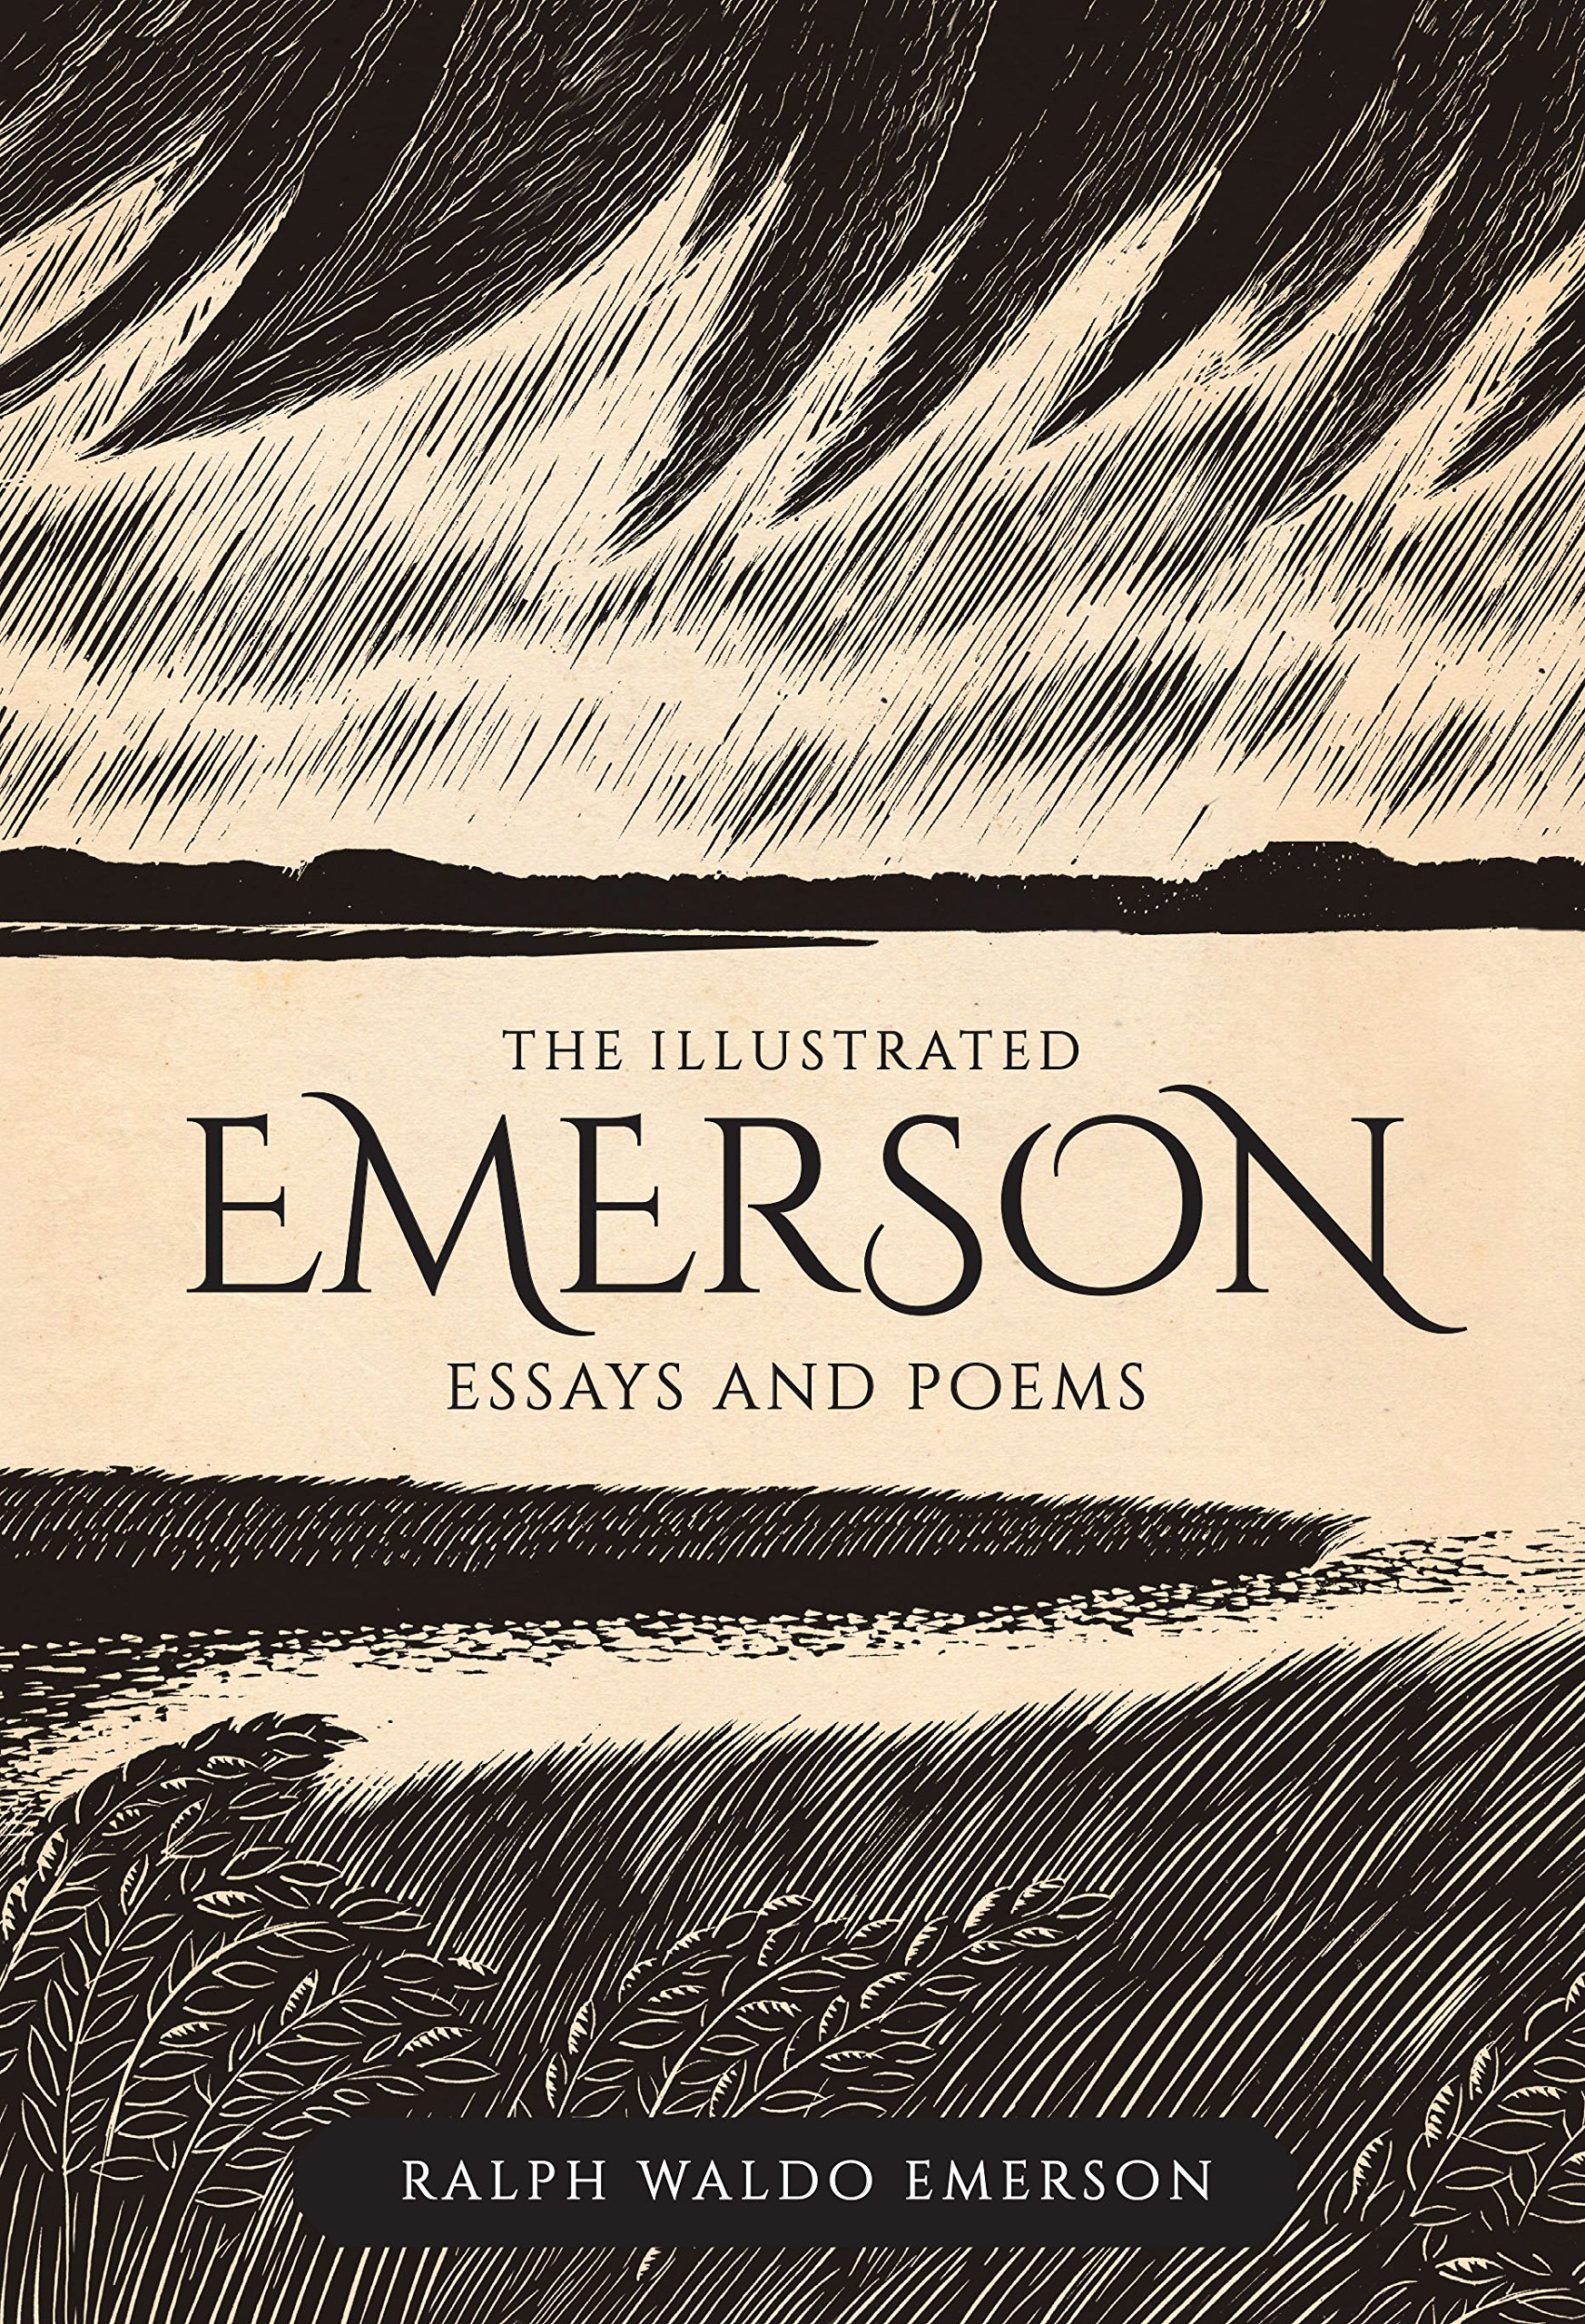 007 Essay Example Emerson Essays Dreaded Self Reliance And Other Second Series Nature Full